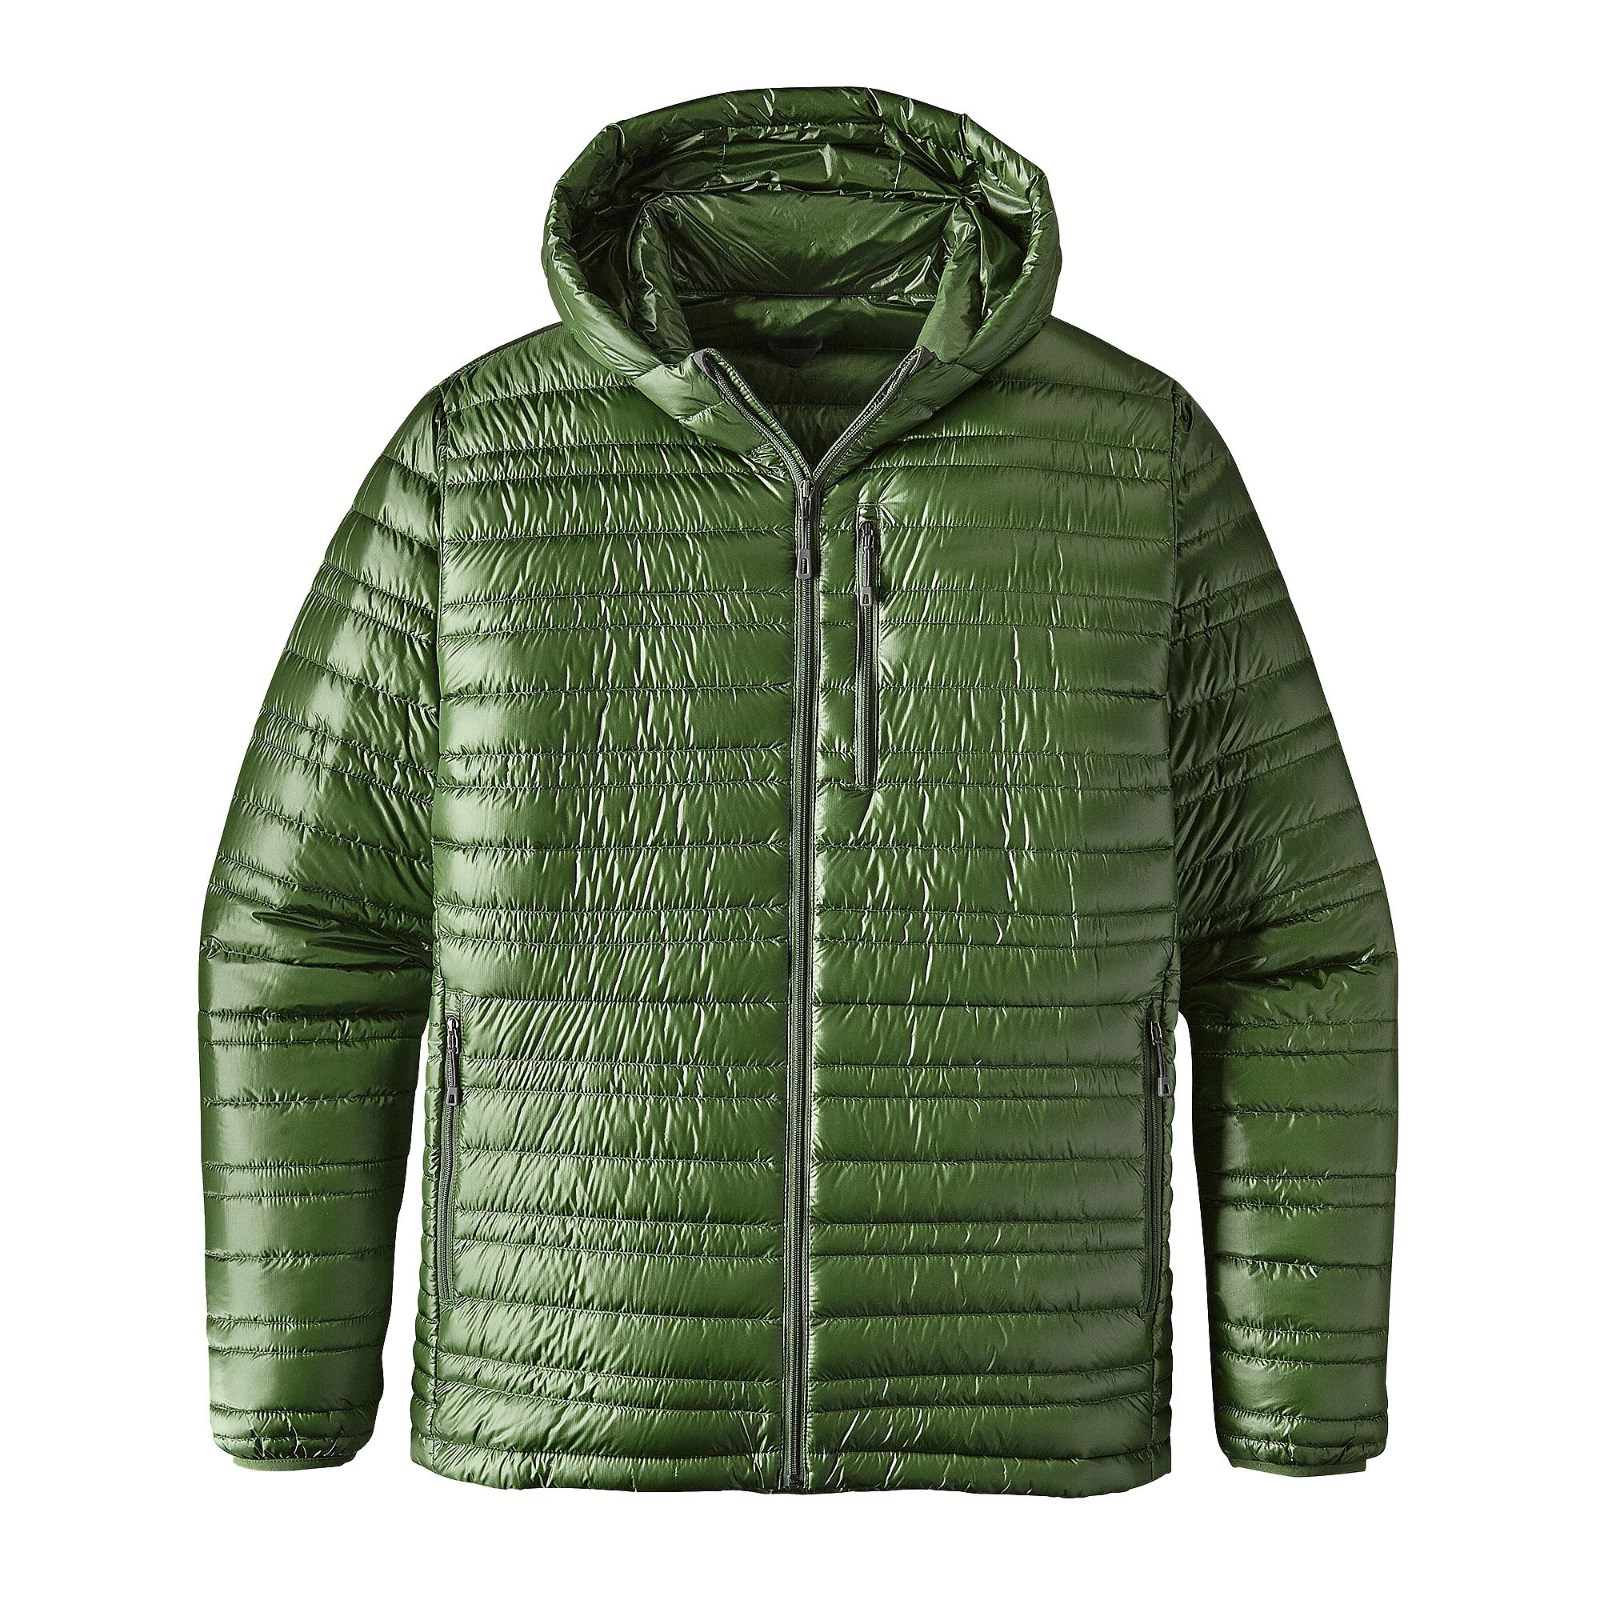 Men's Ultralight Down Hoody Jacket Manufacturers, Men's Ultralight Down Hoody Jacket Factory, Supply Men's Ultralight Down Hoody Jacket